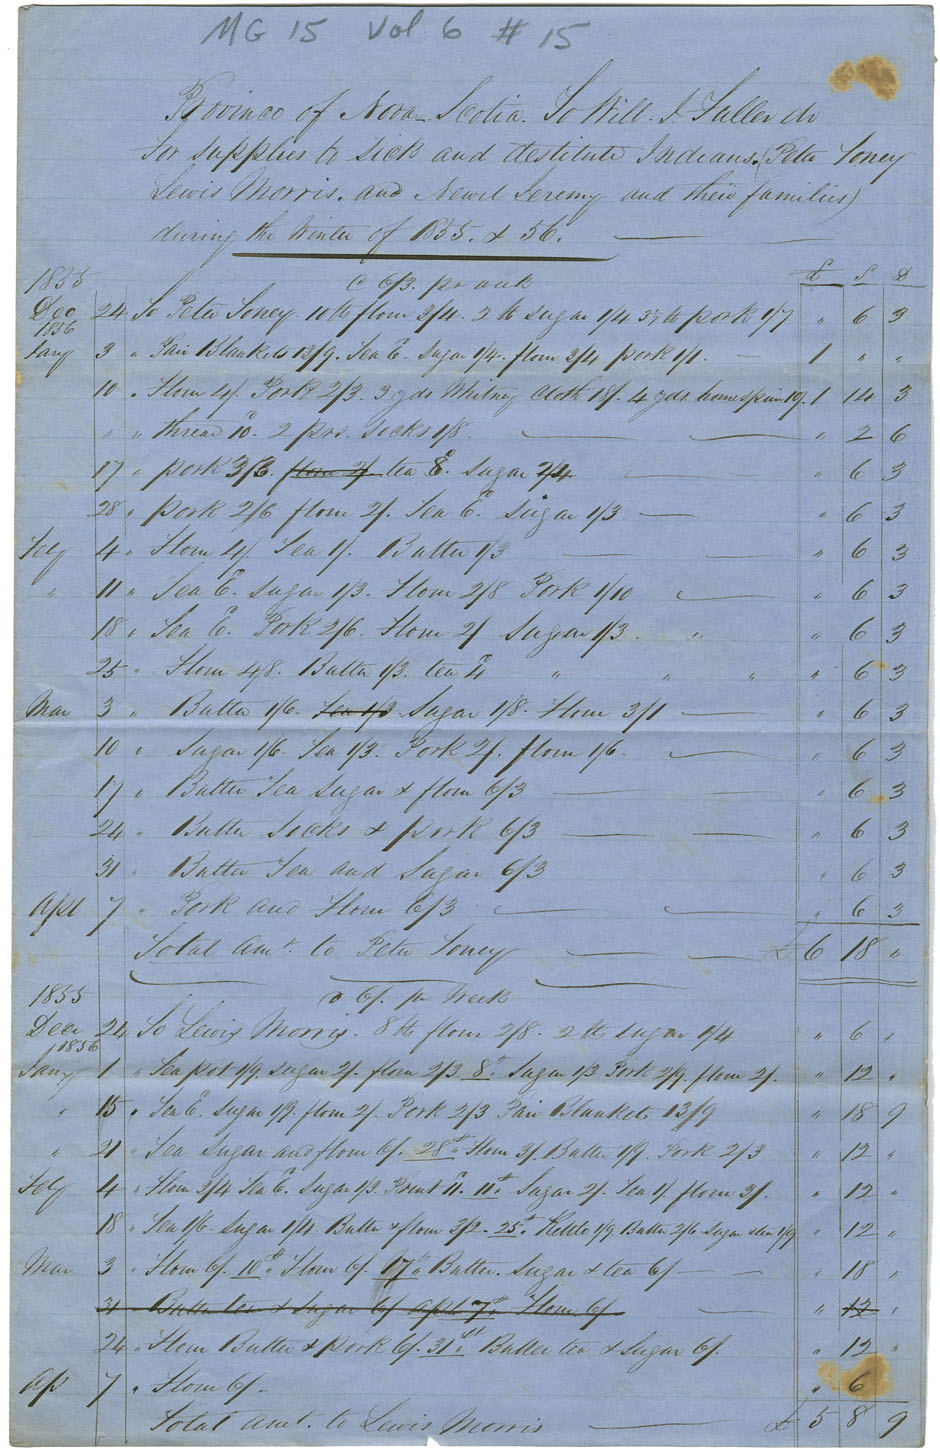 Report of W.J. Fuller of Horton of aid to Mi'kmaq.